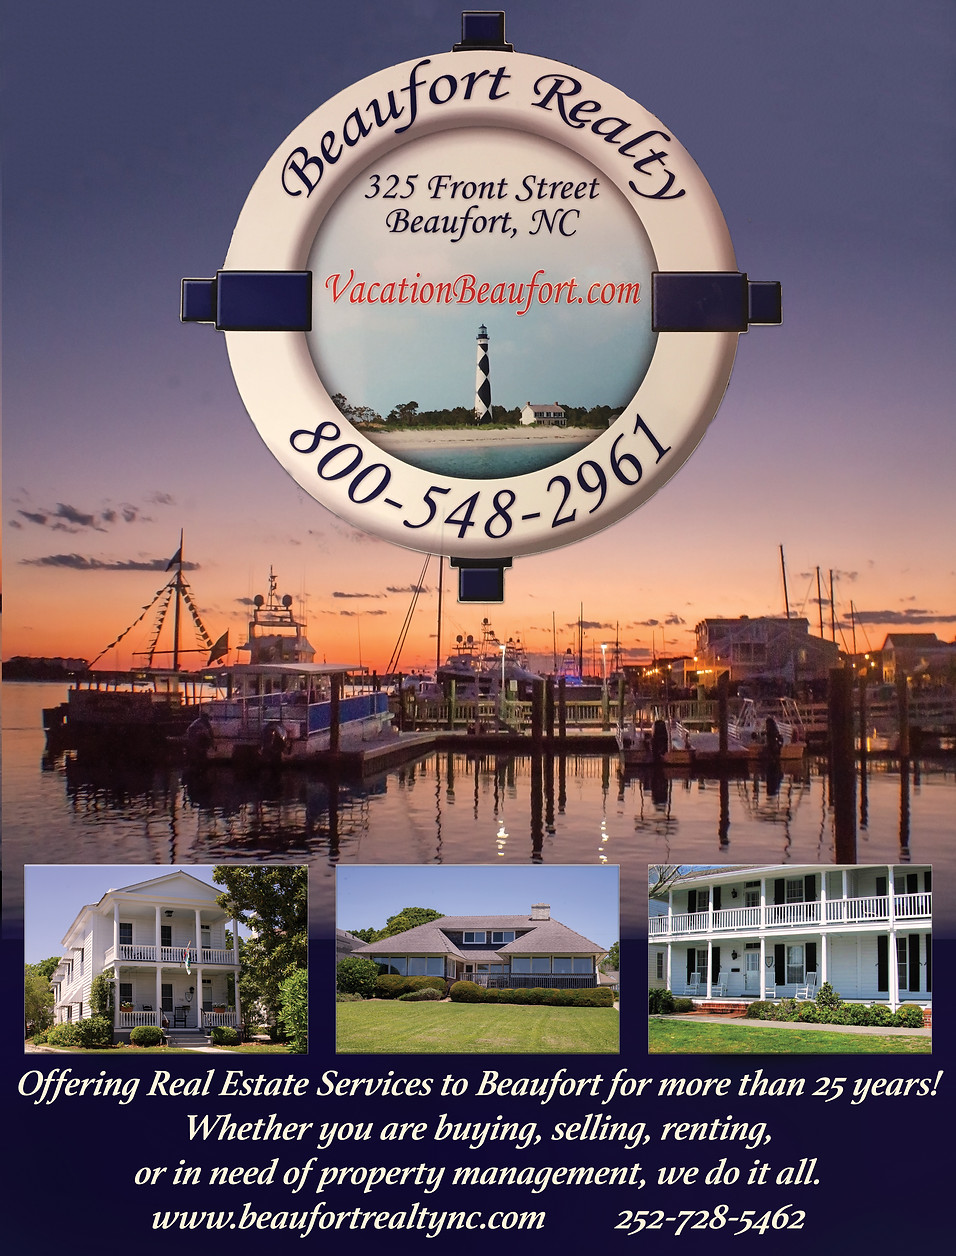 Advertisement & Photography for Beaufort Realty, Beaufort, NC